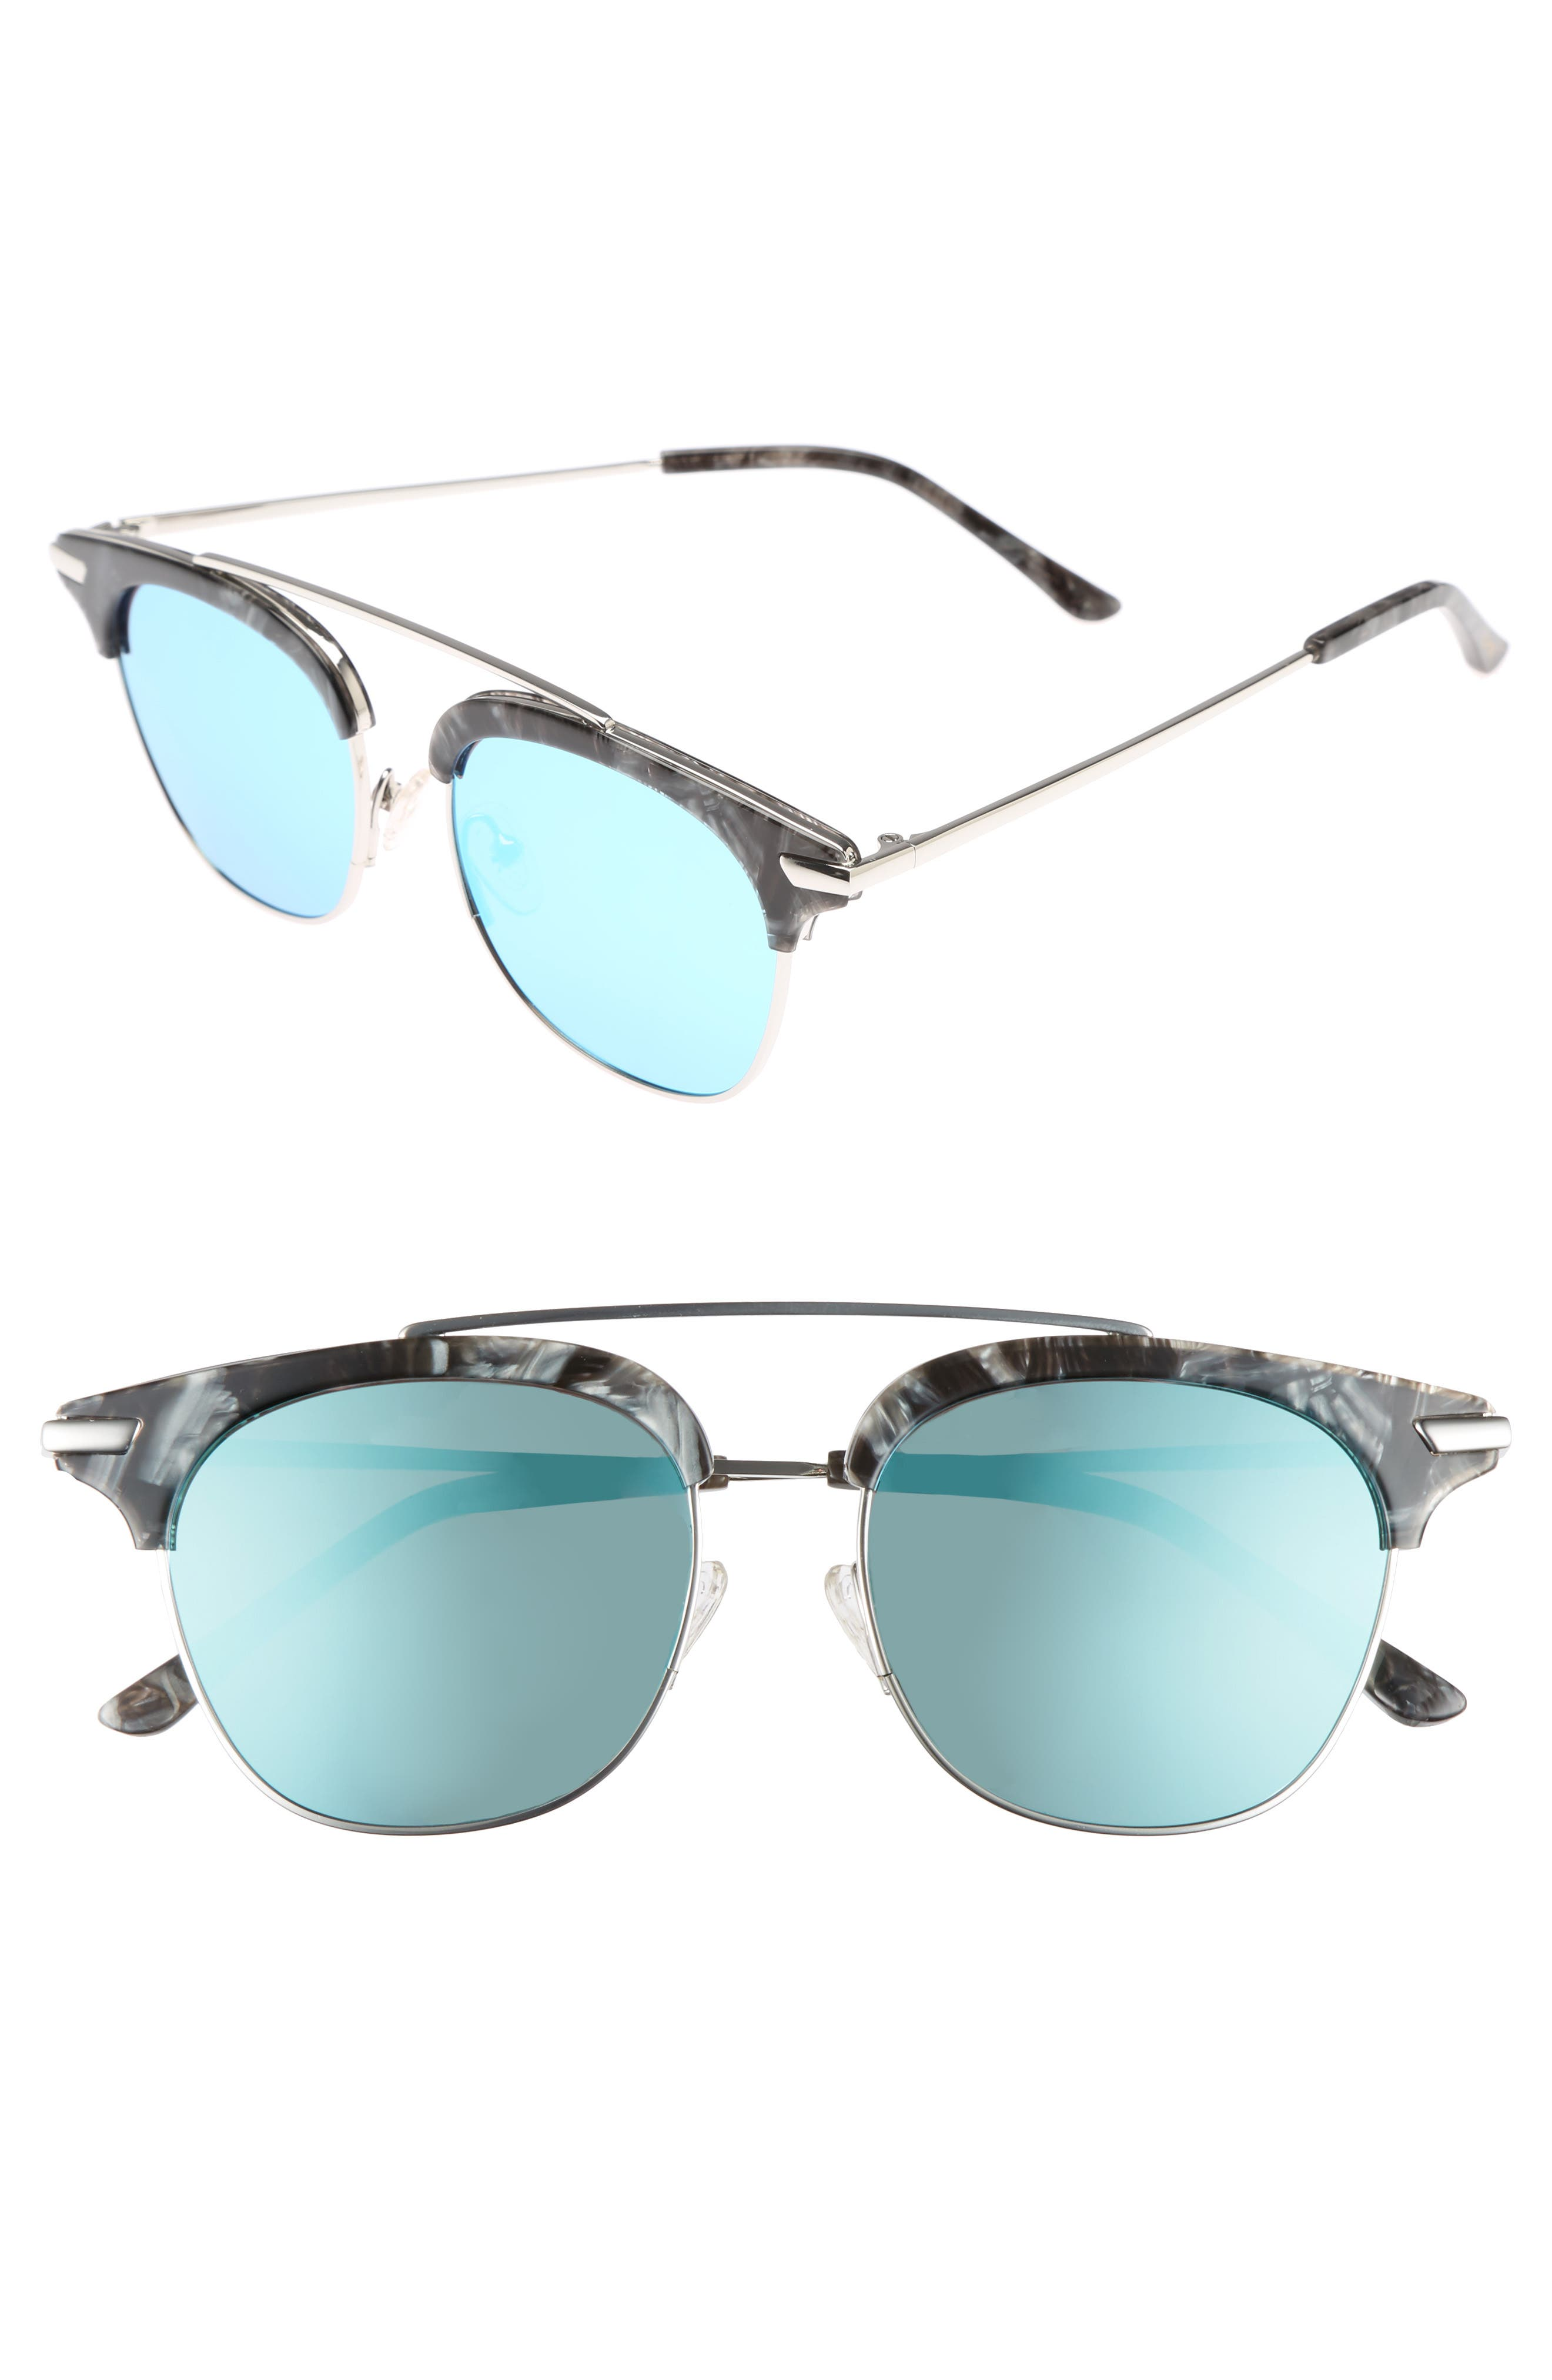 Midway 51mm Polarized Brow Bar Sunglasses,                         Main,                         color, BLUE